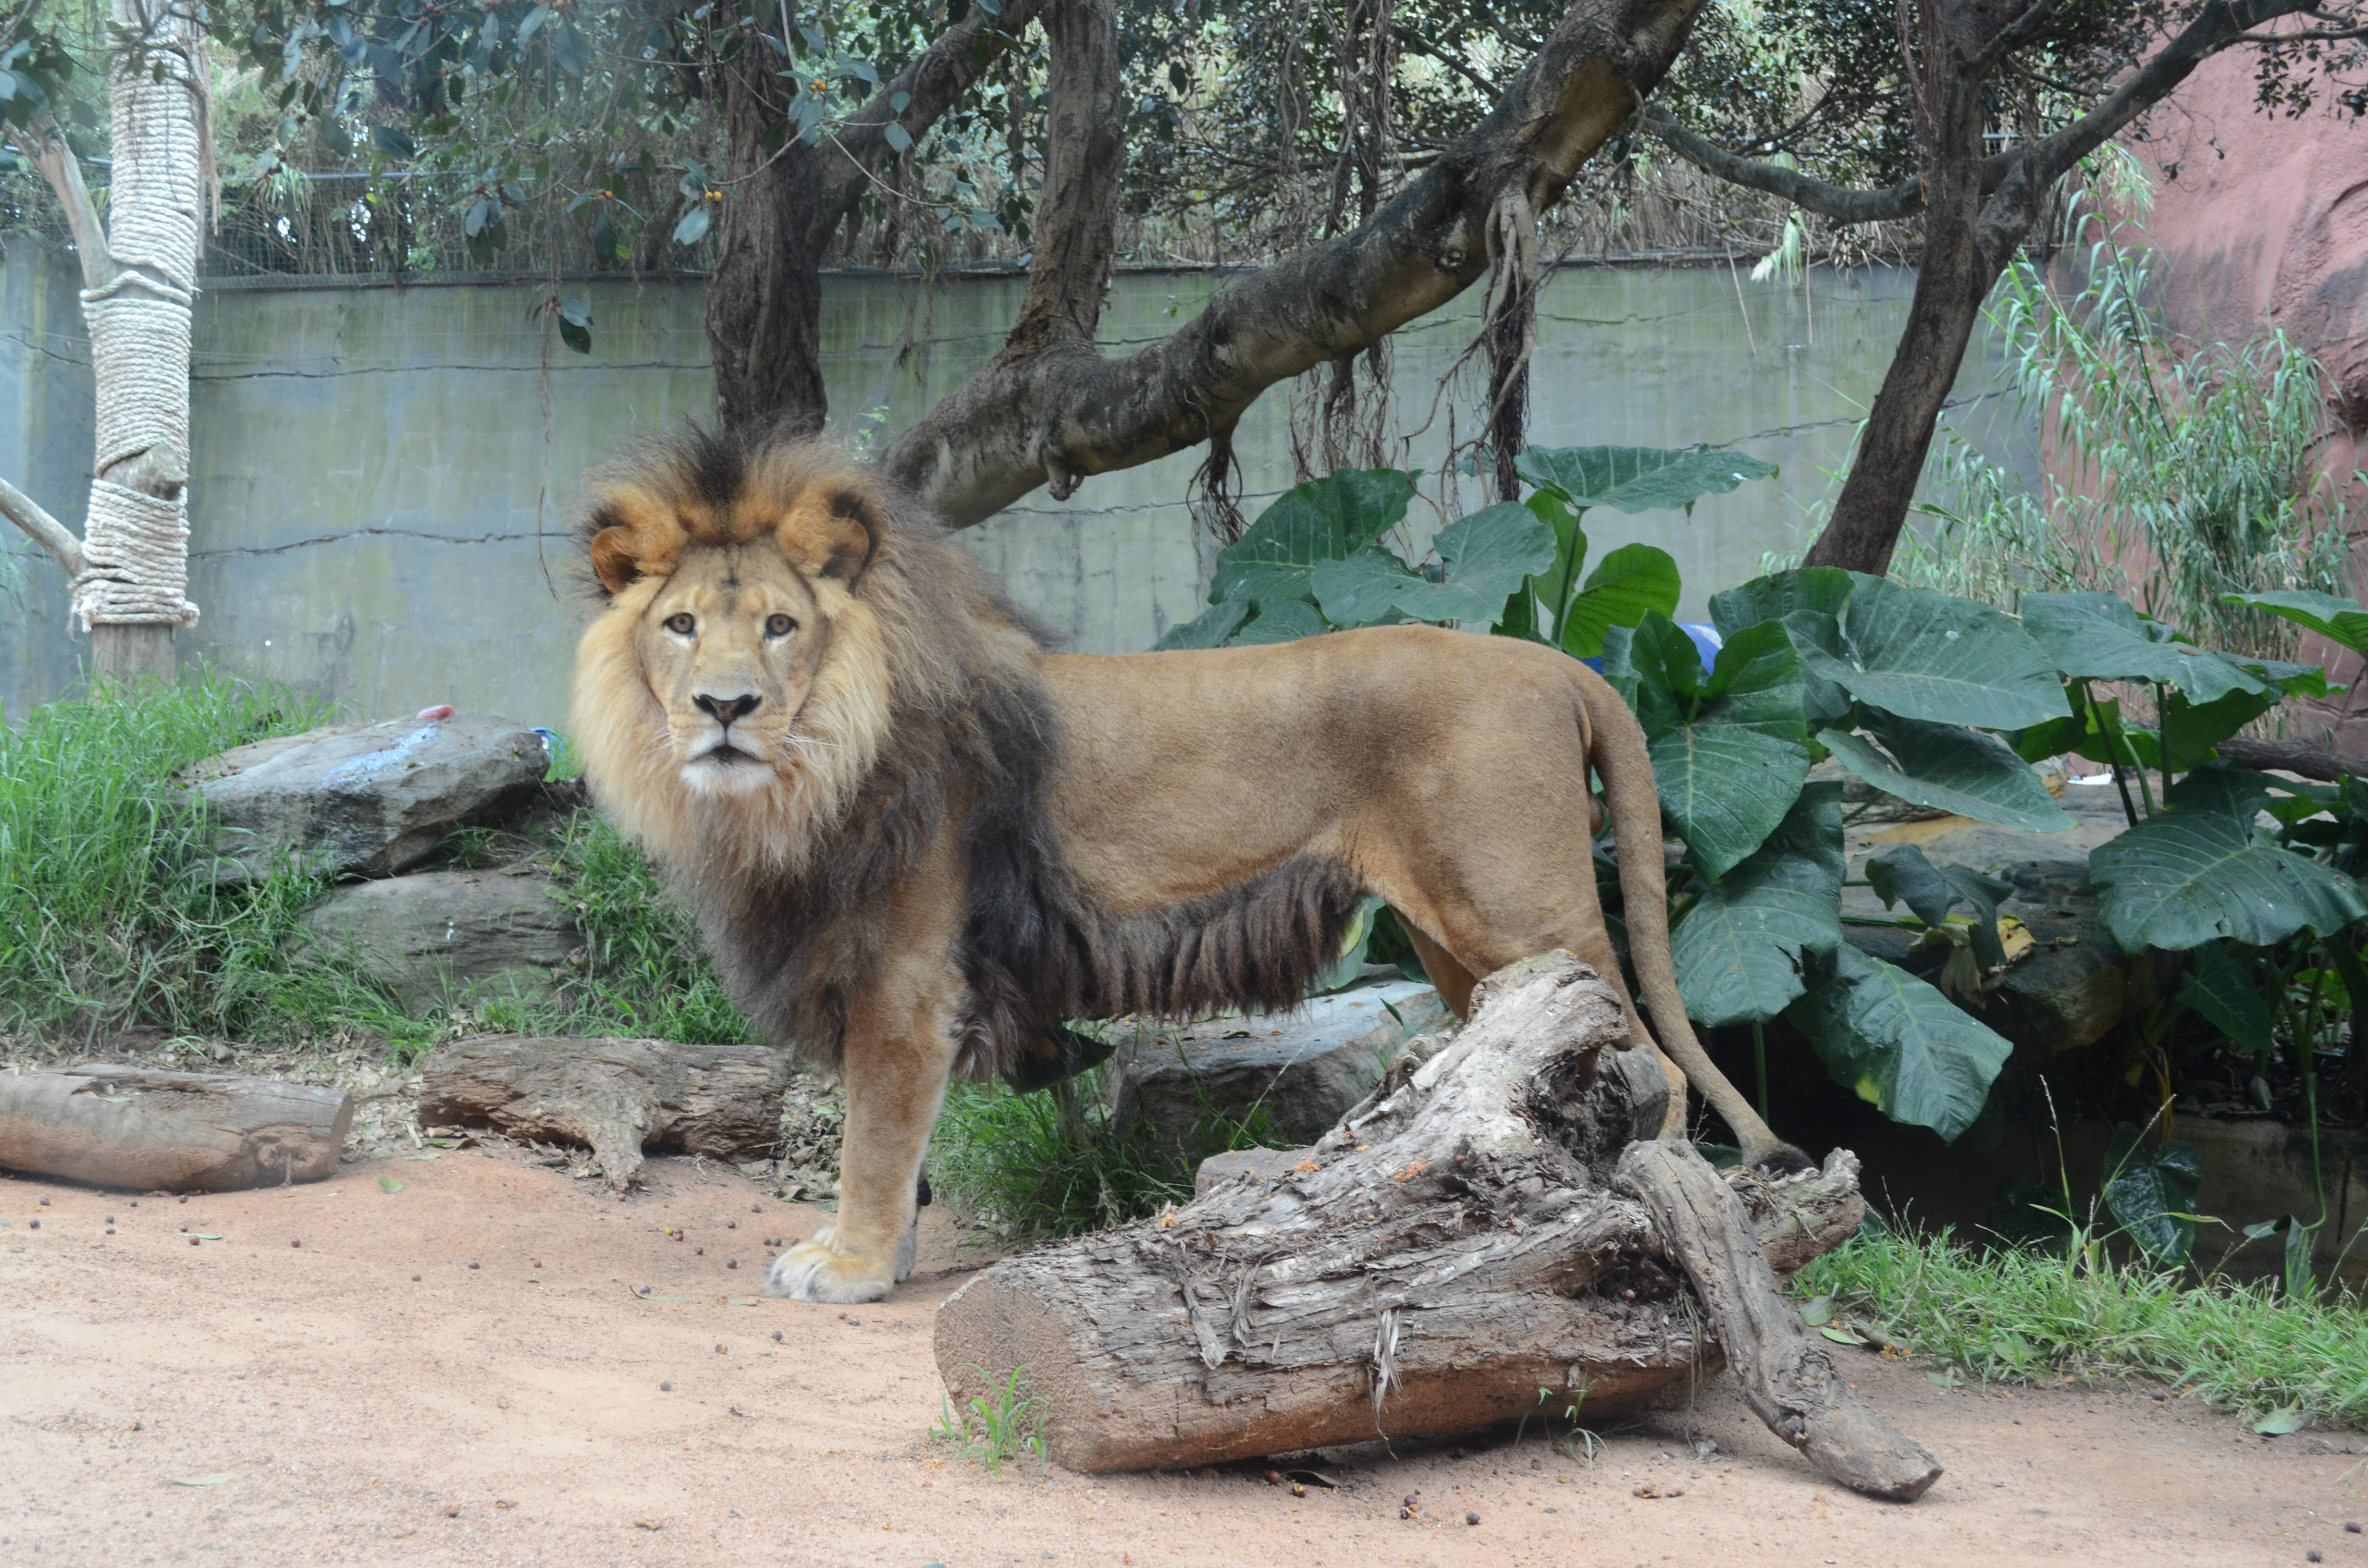 taronga zoo Find hotels near taronga zoo, australia online good availability and great rates book online, pay at the hotel no reservation costs.